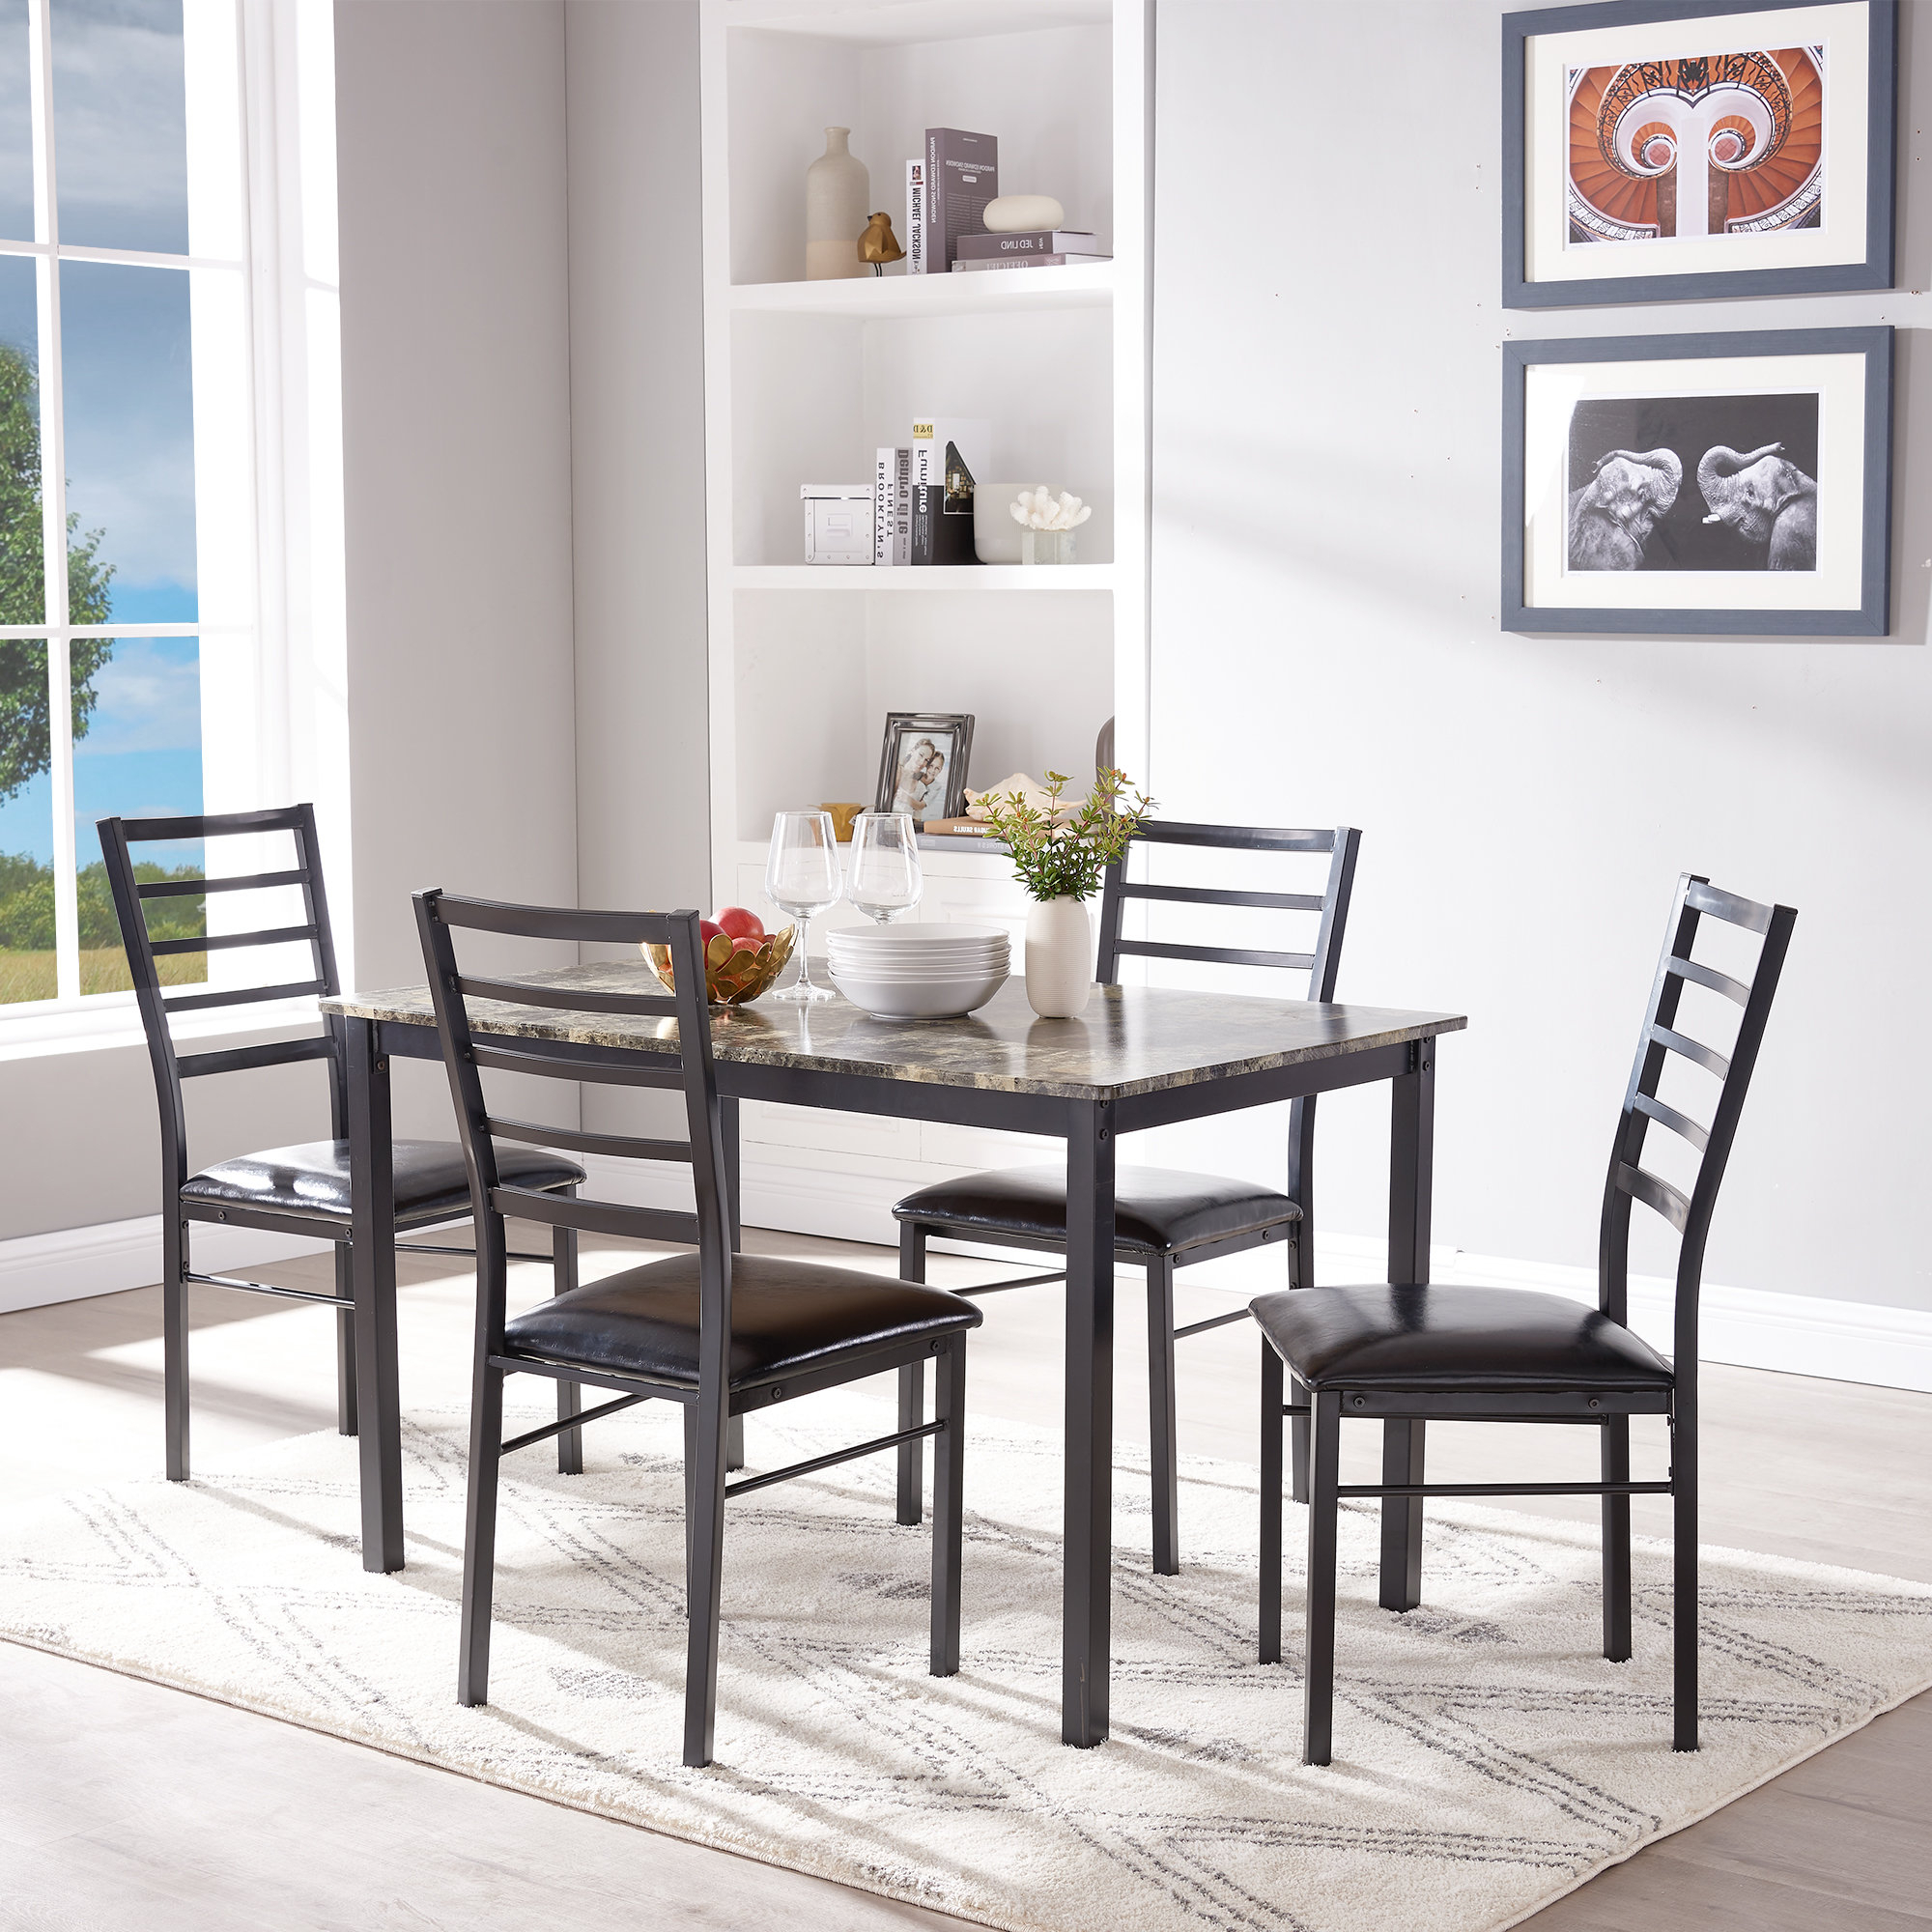 Most Popular Emmeline 5 Piece Breakfast Nook Dining Sets With Regard To Mukai 5 Piece Dining Set (View 13 of 20)